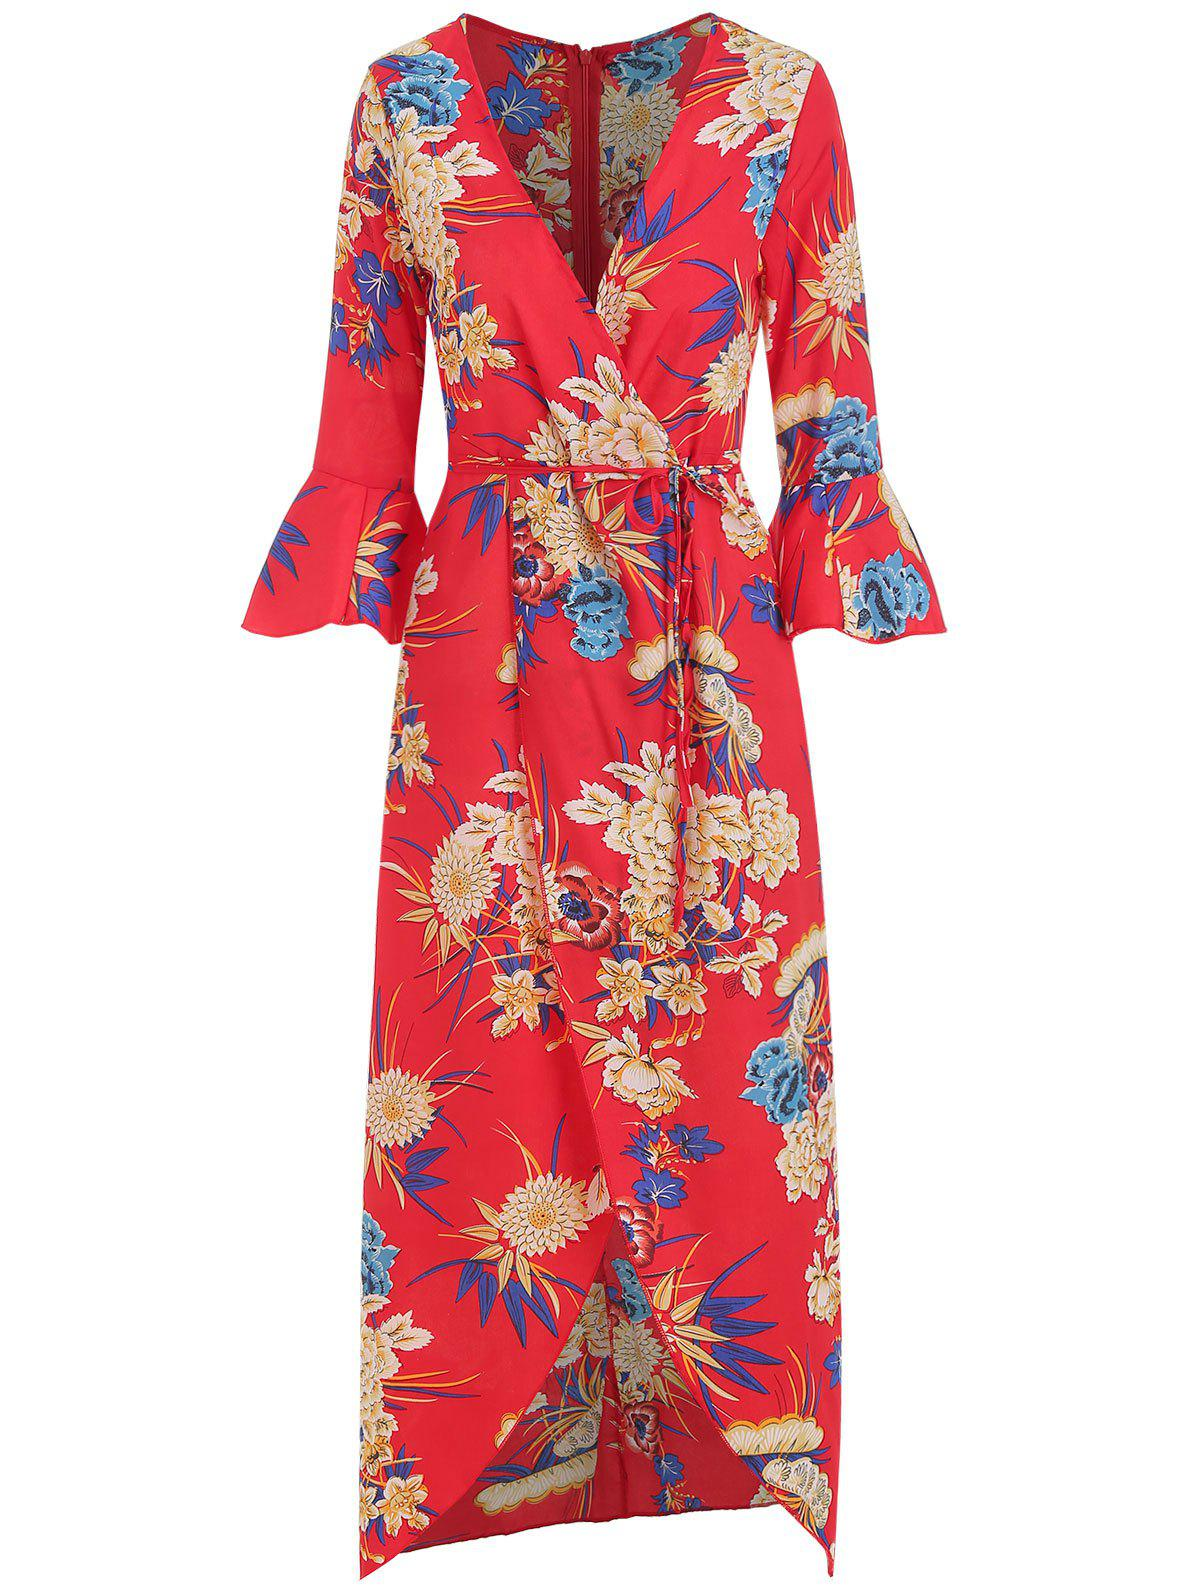 Fancy Floral Print Flare Sleeve Wrap Dress